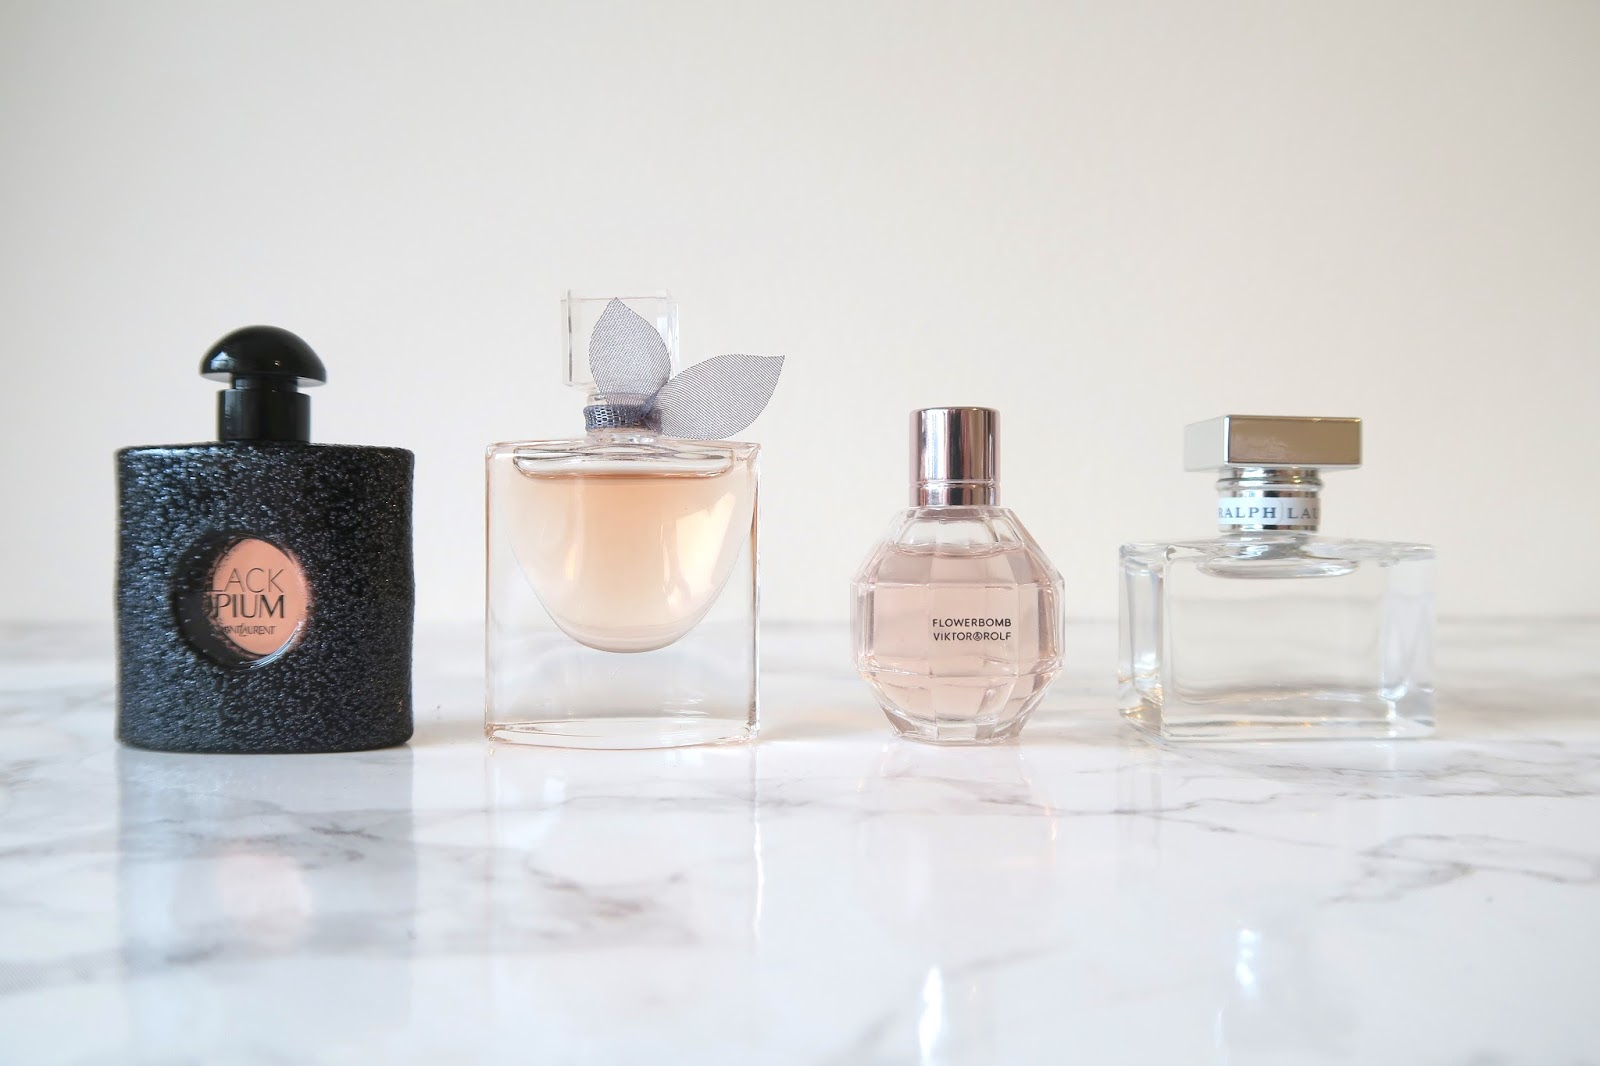 Four mini perfumes from YSL, Lancome, Viktor and Rolf and Ralph Lauren